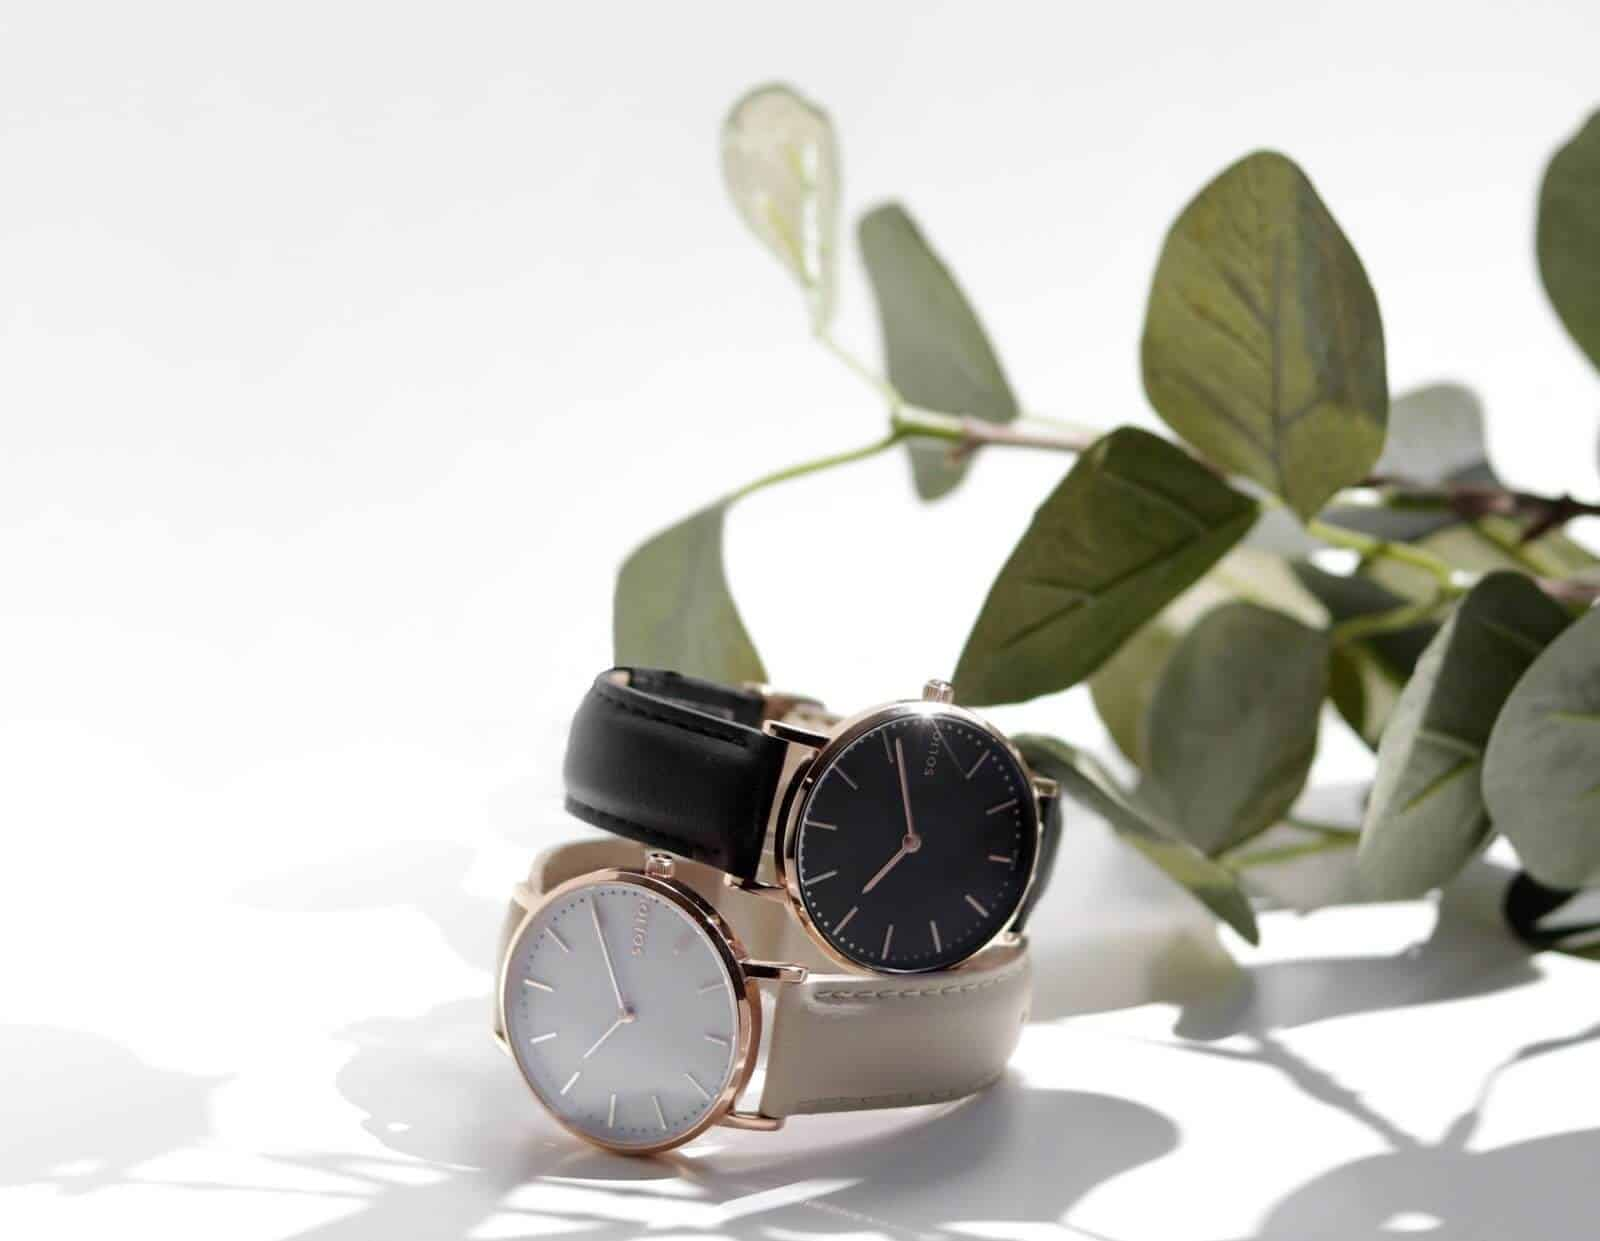 Sustainable and Eco Friendly Watches Image by Solios Watches #ecofriendlywatches #sustainablewatches #sustainablejungle